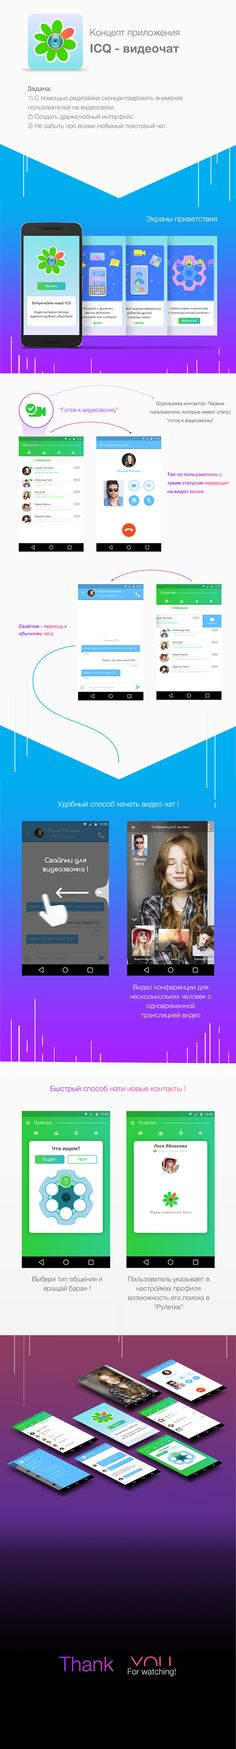 icq concept design, mobile app, ui ux, icon, illustration, chat, messenger, android